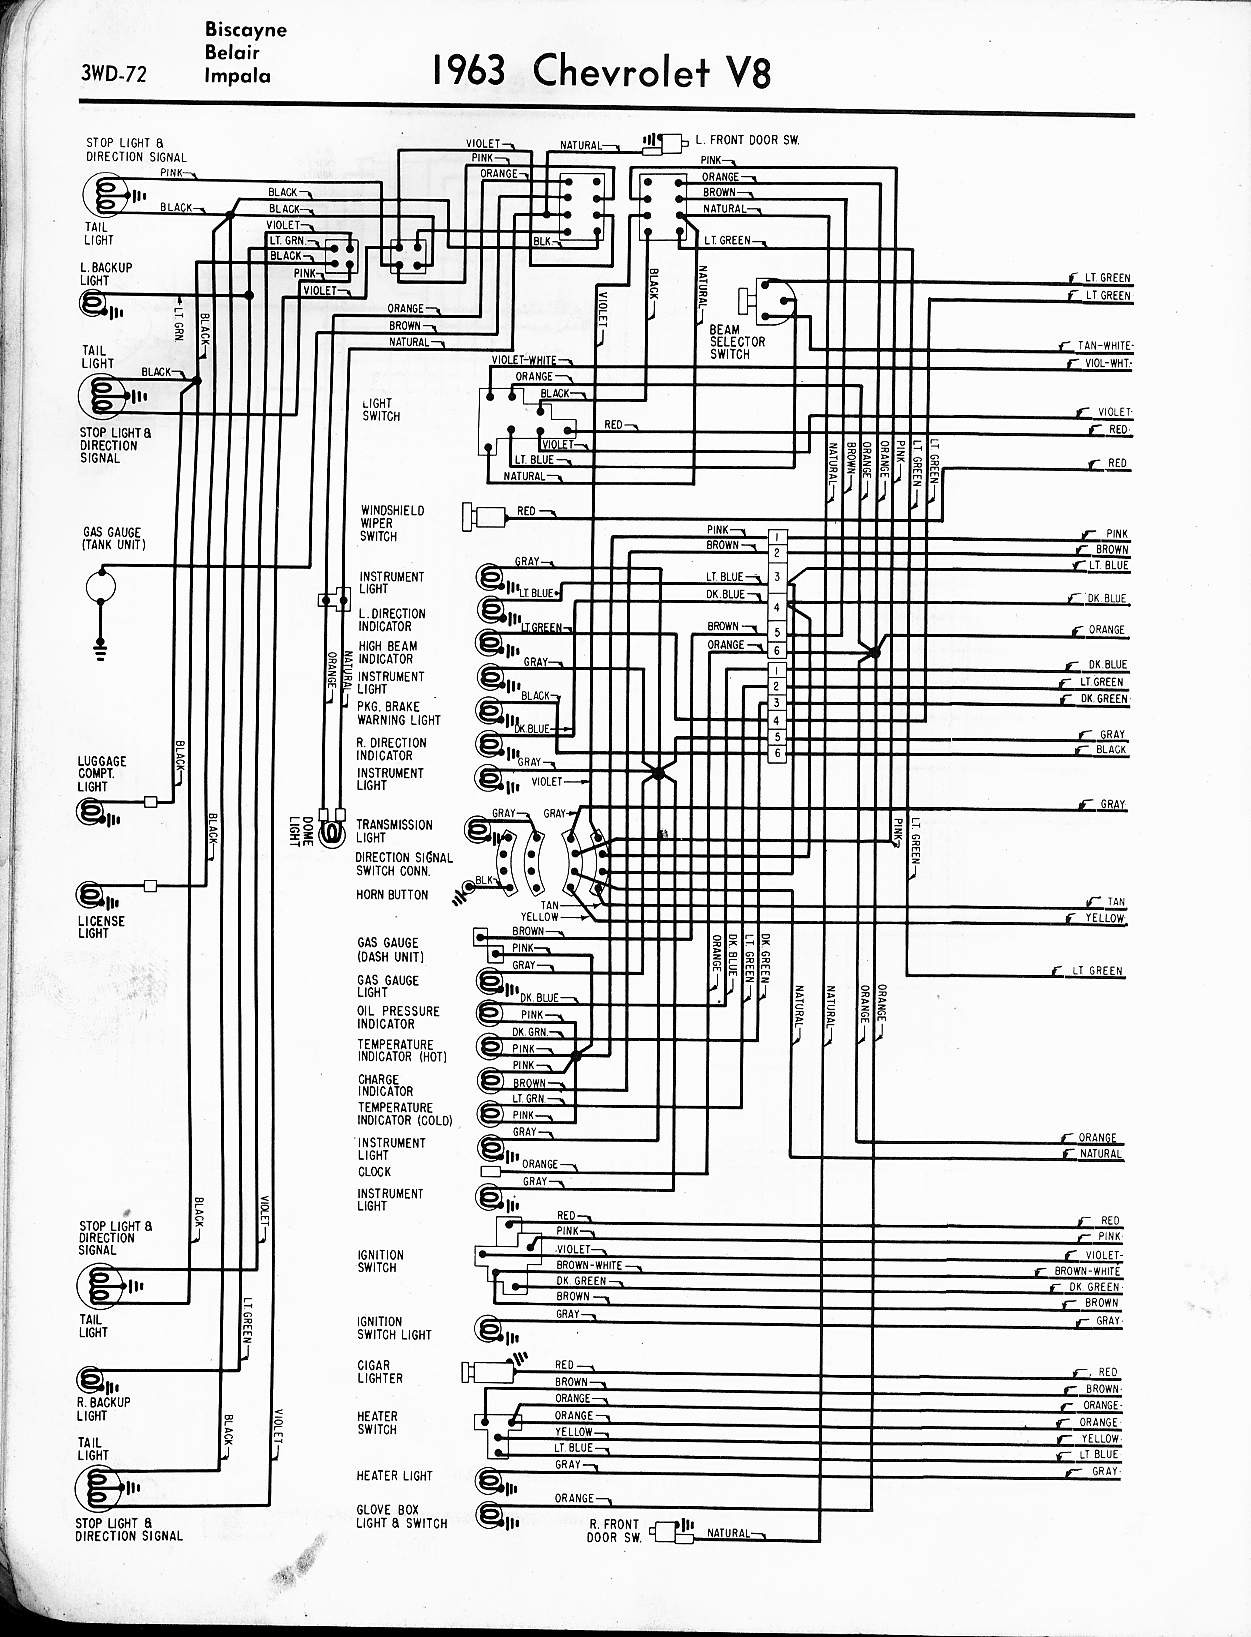 64 chevy wiring diagram wiring library diagram rh 14 qmip mamafitkongress de